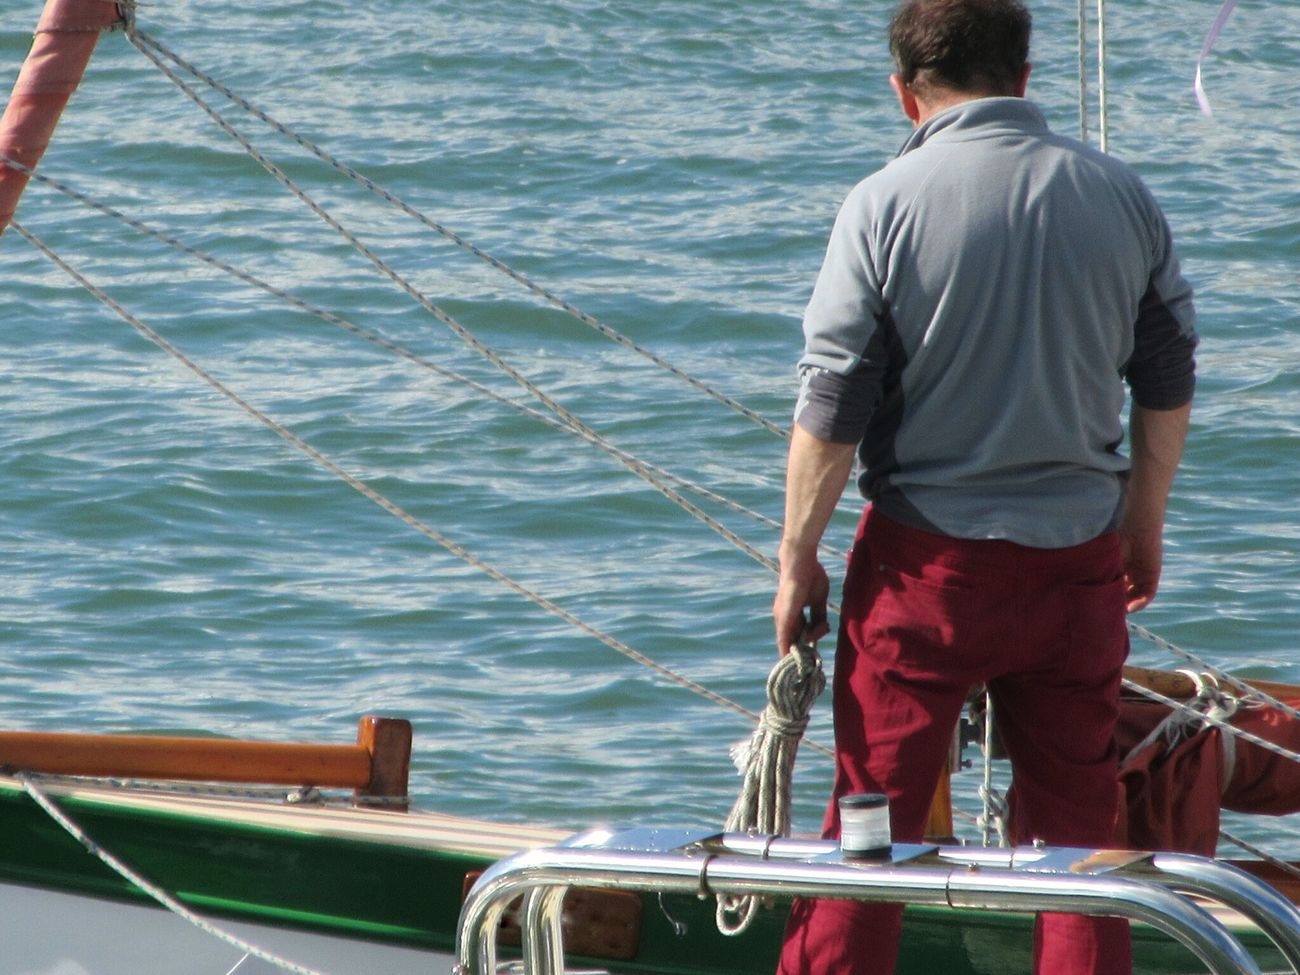 Going sailing Sailboat Yachtsman Ropes RiggingSailing Baltimore Ireland West Cork Wildatlanticway Ireland